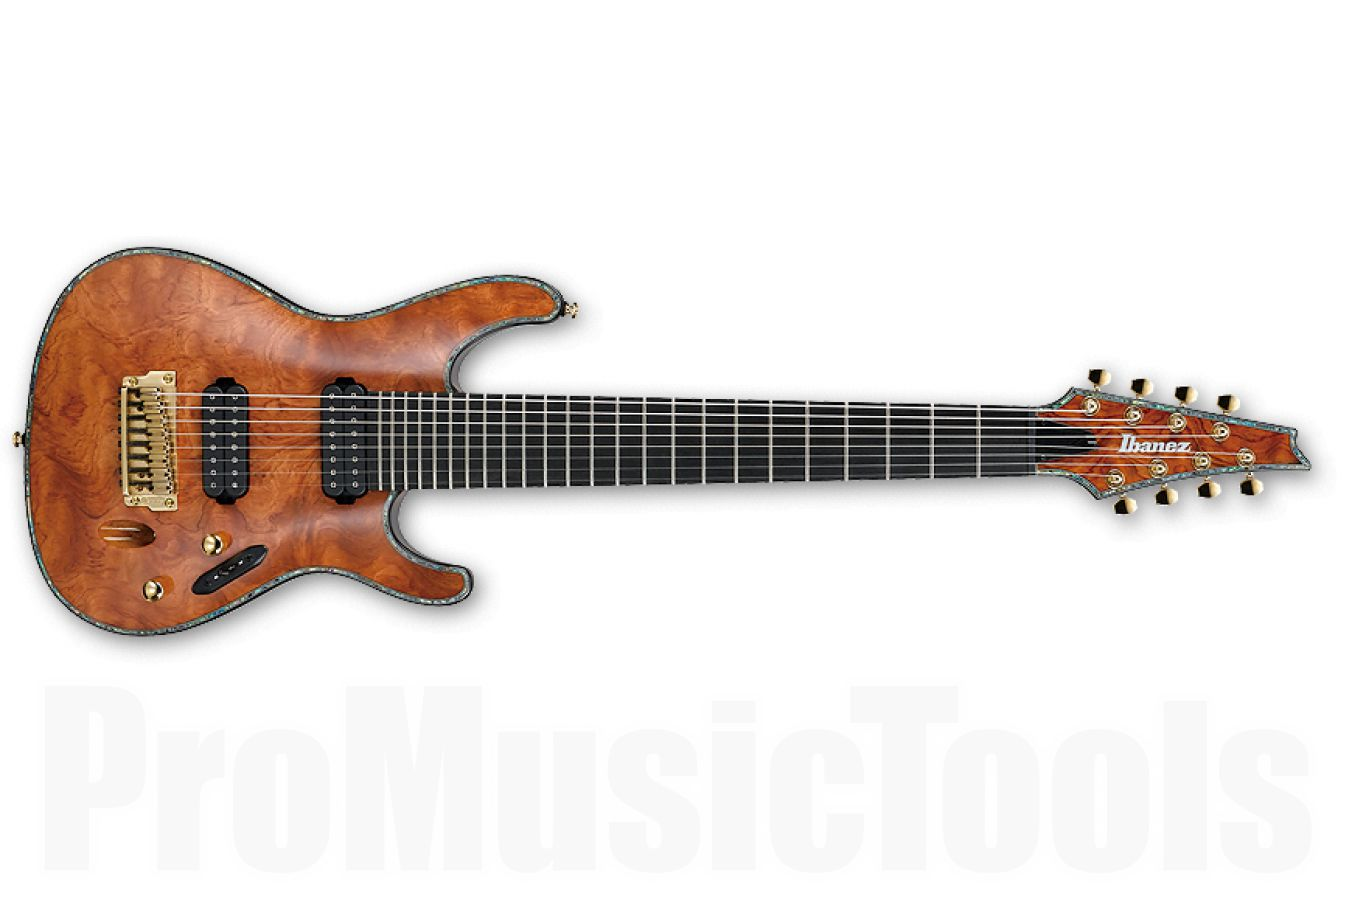 Ibanez SIX28FDBG NT - Natural